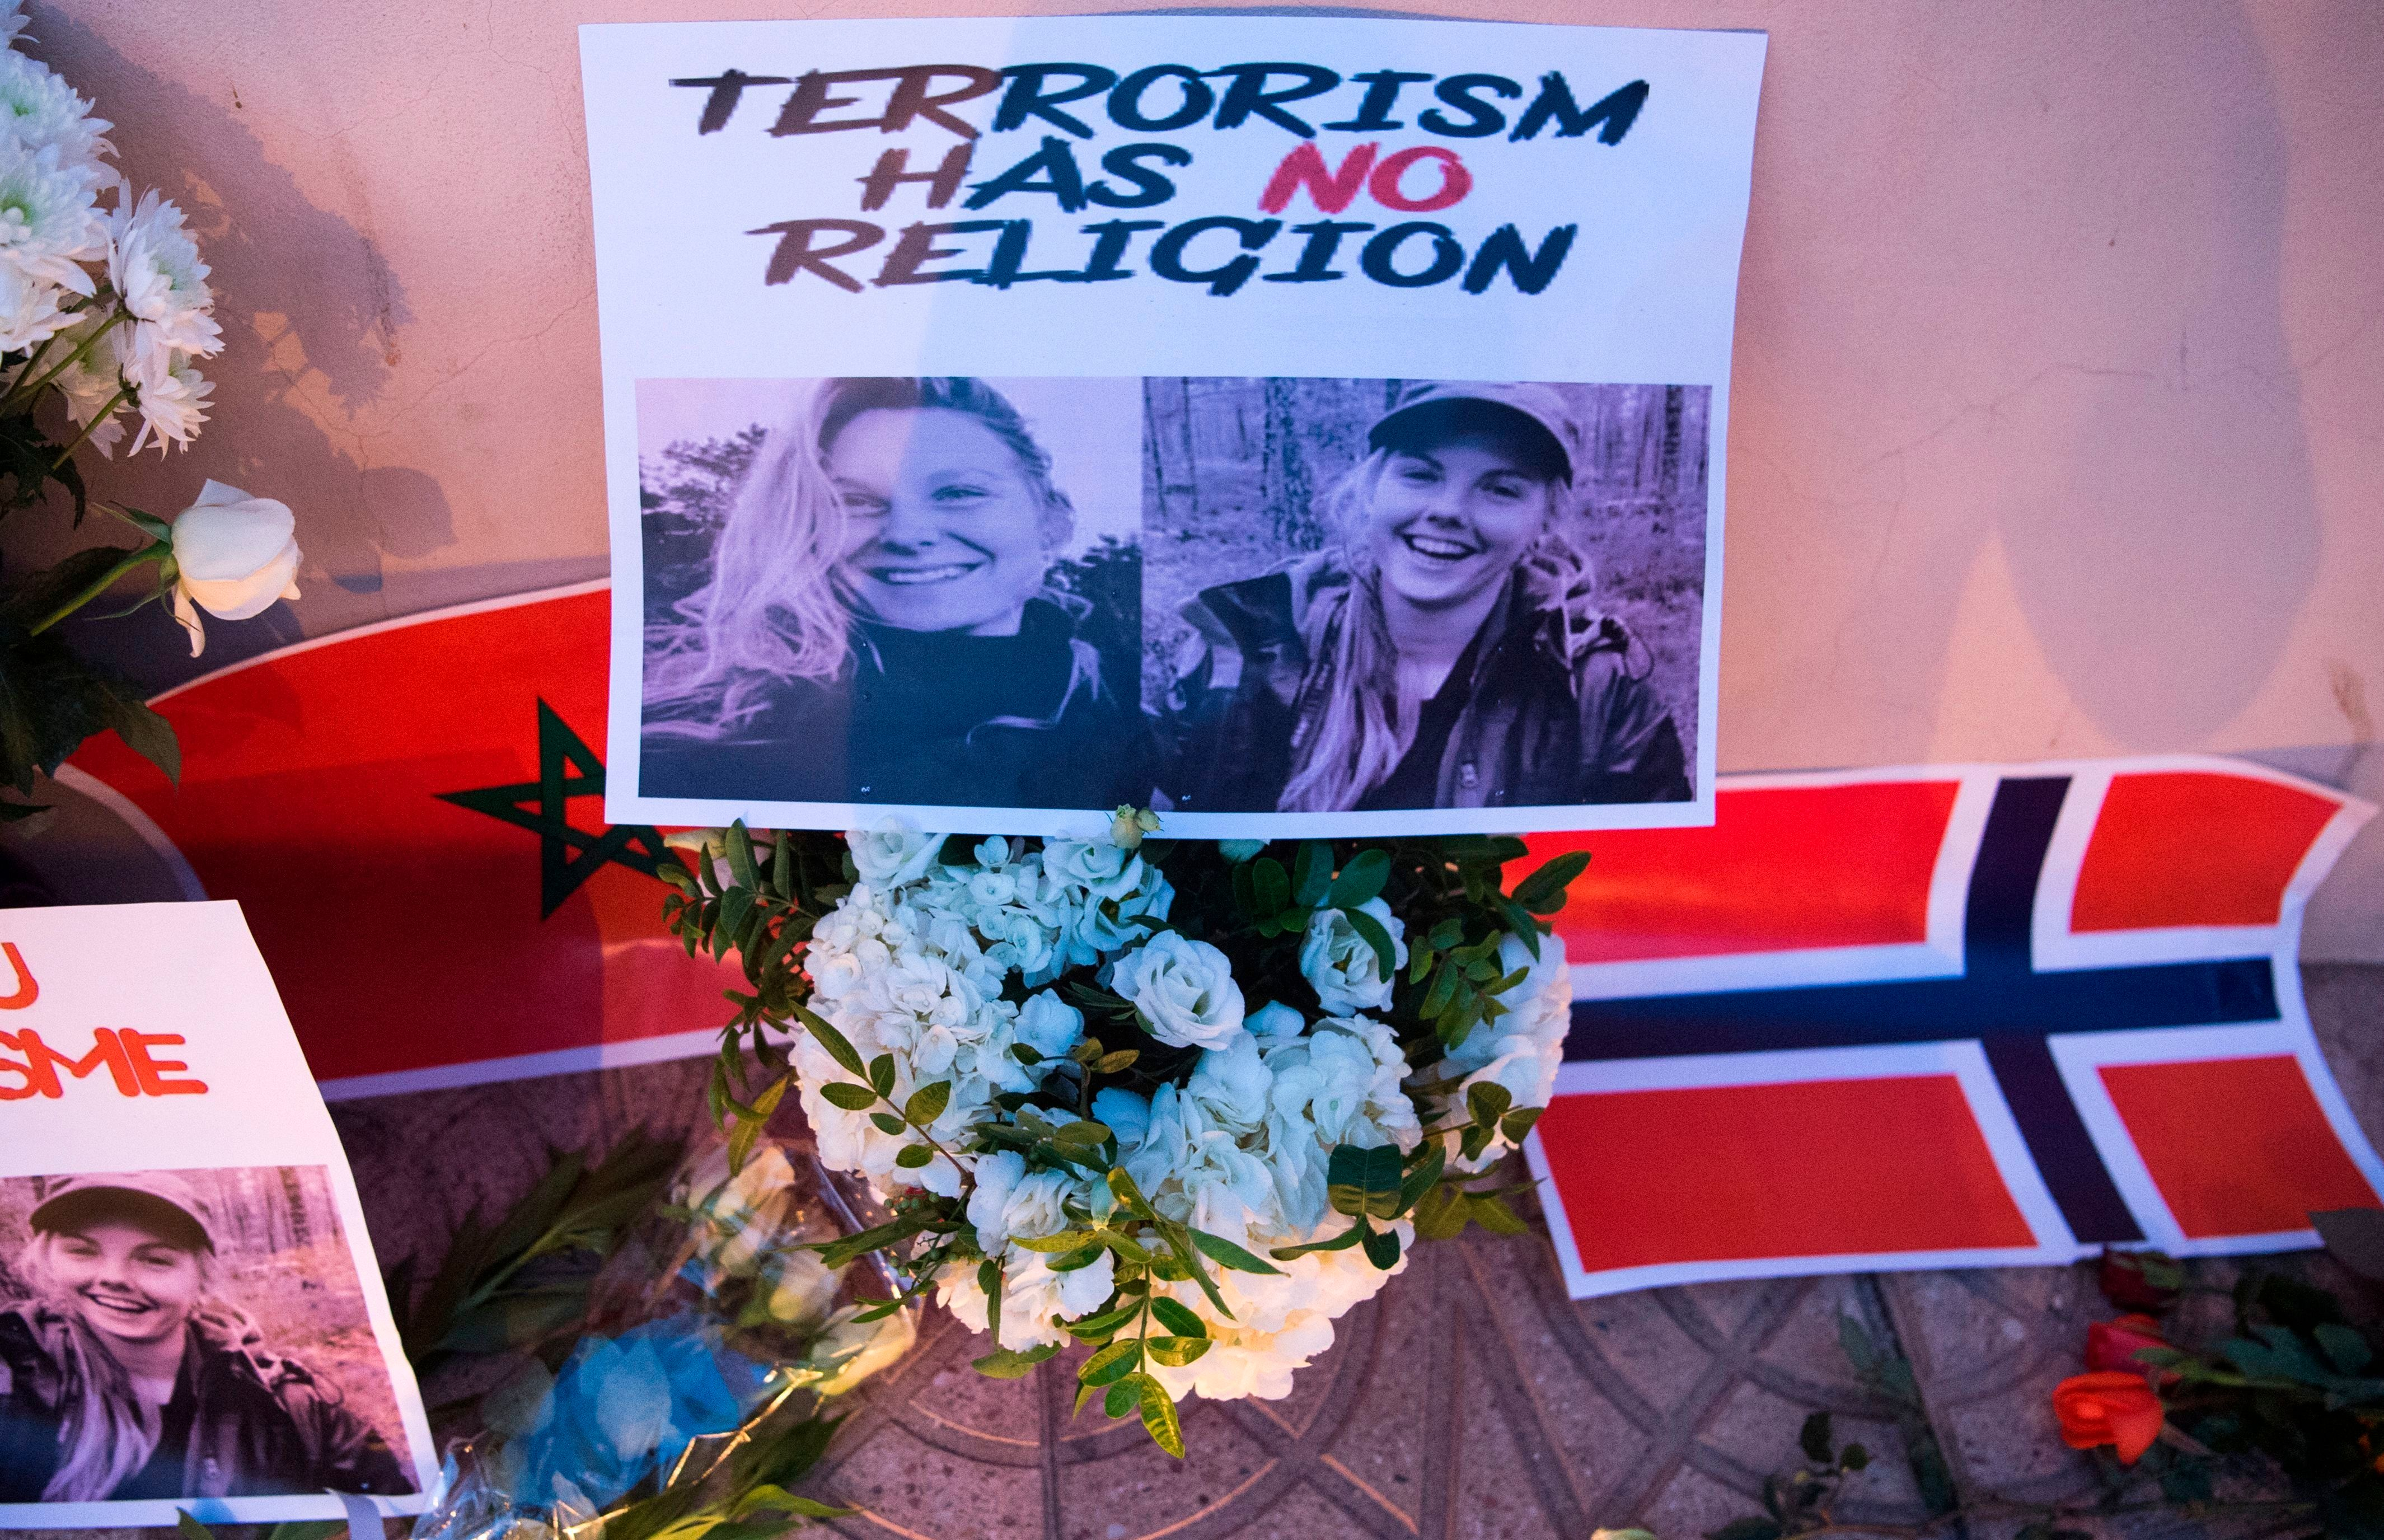 This picture taken on December 21, 2018 shows a combo photo murdered Danish student Louisa Vesterager Jespersen (L) and Nowegian Maren Ueland placed on top of flowers and between the flags of Morocco an Norway as Moroccans pay tribute to the Scandinavian victims. - The bodies of the 24-year-old Danish student 28-year-old Norwegian were found on December 17, after the two friends had pitched their tent at an isolated mountain site two hours' walk from the tourist village of Imlil. (Photo by FADEL SENNA / AFP)        (Photo credit should read FADEL SENNA/AFP/Getty Images)